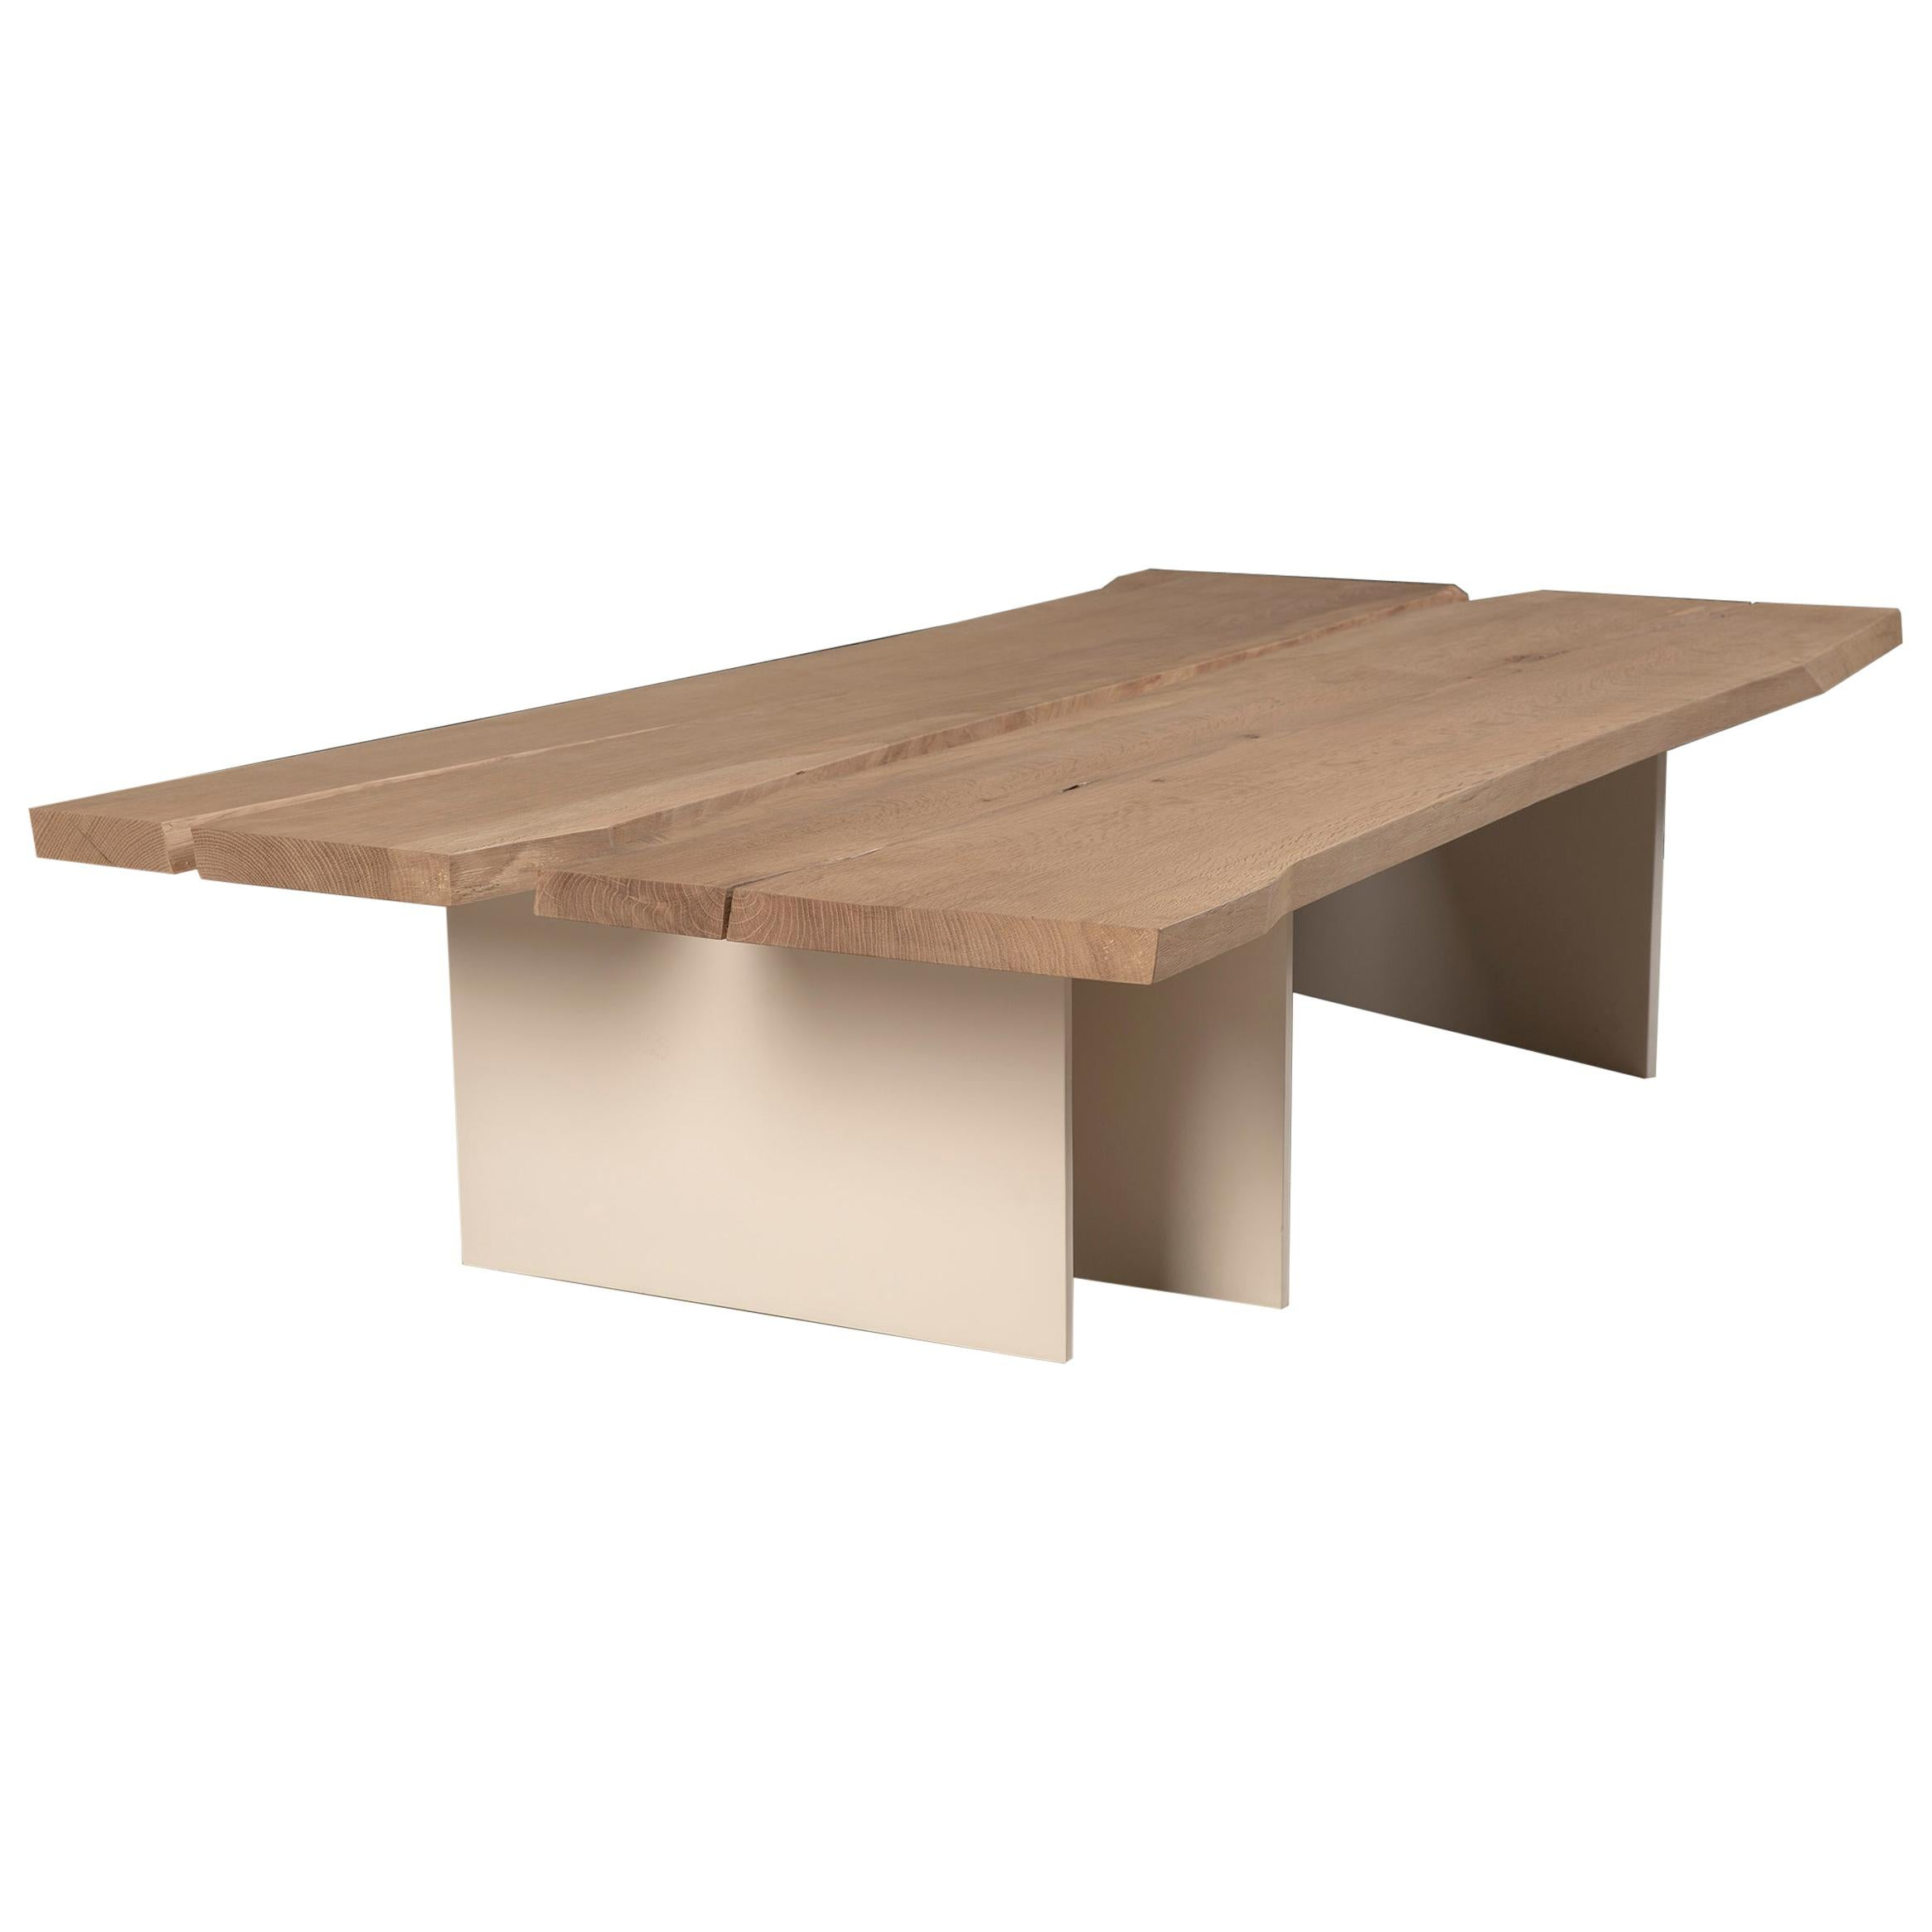 Tandem Coffee Table in White Oak and Soft White Metal Base by Vivian Carbonell